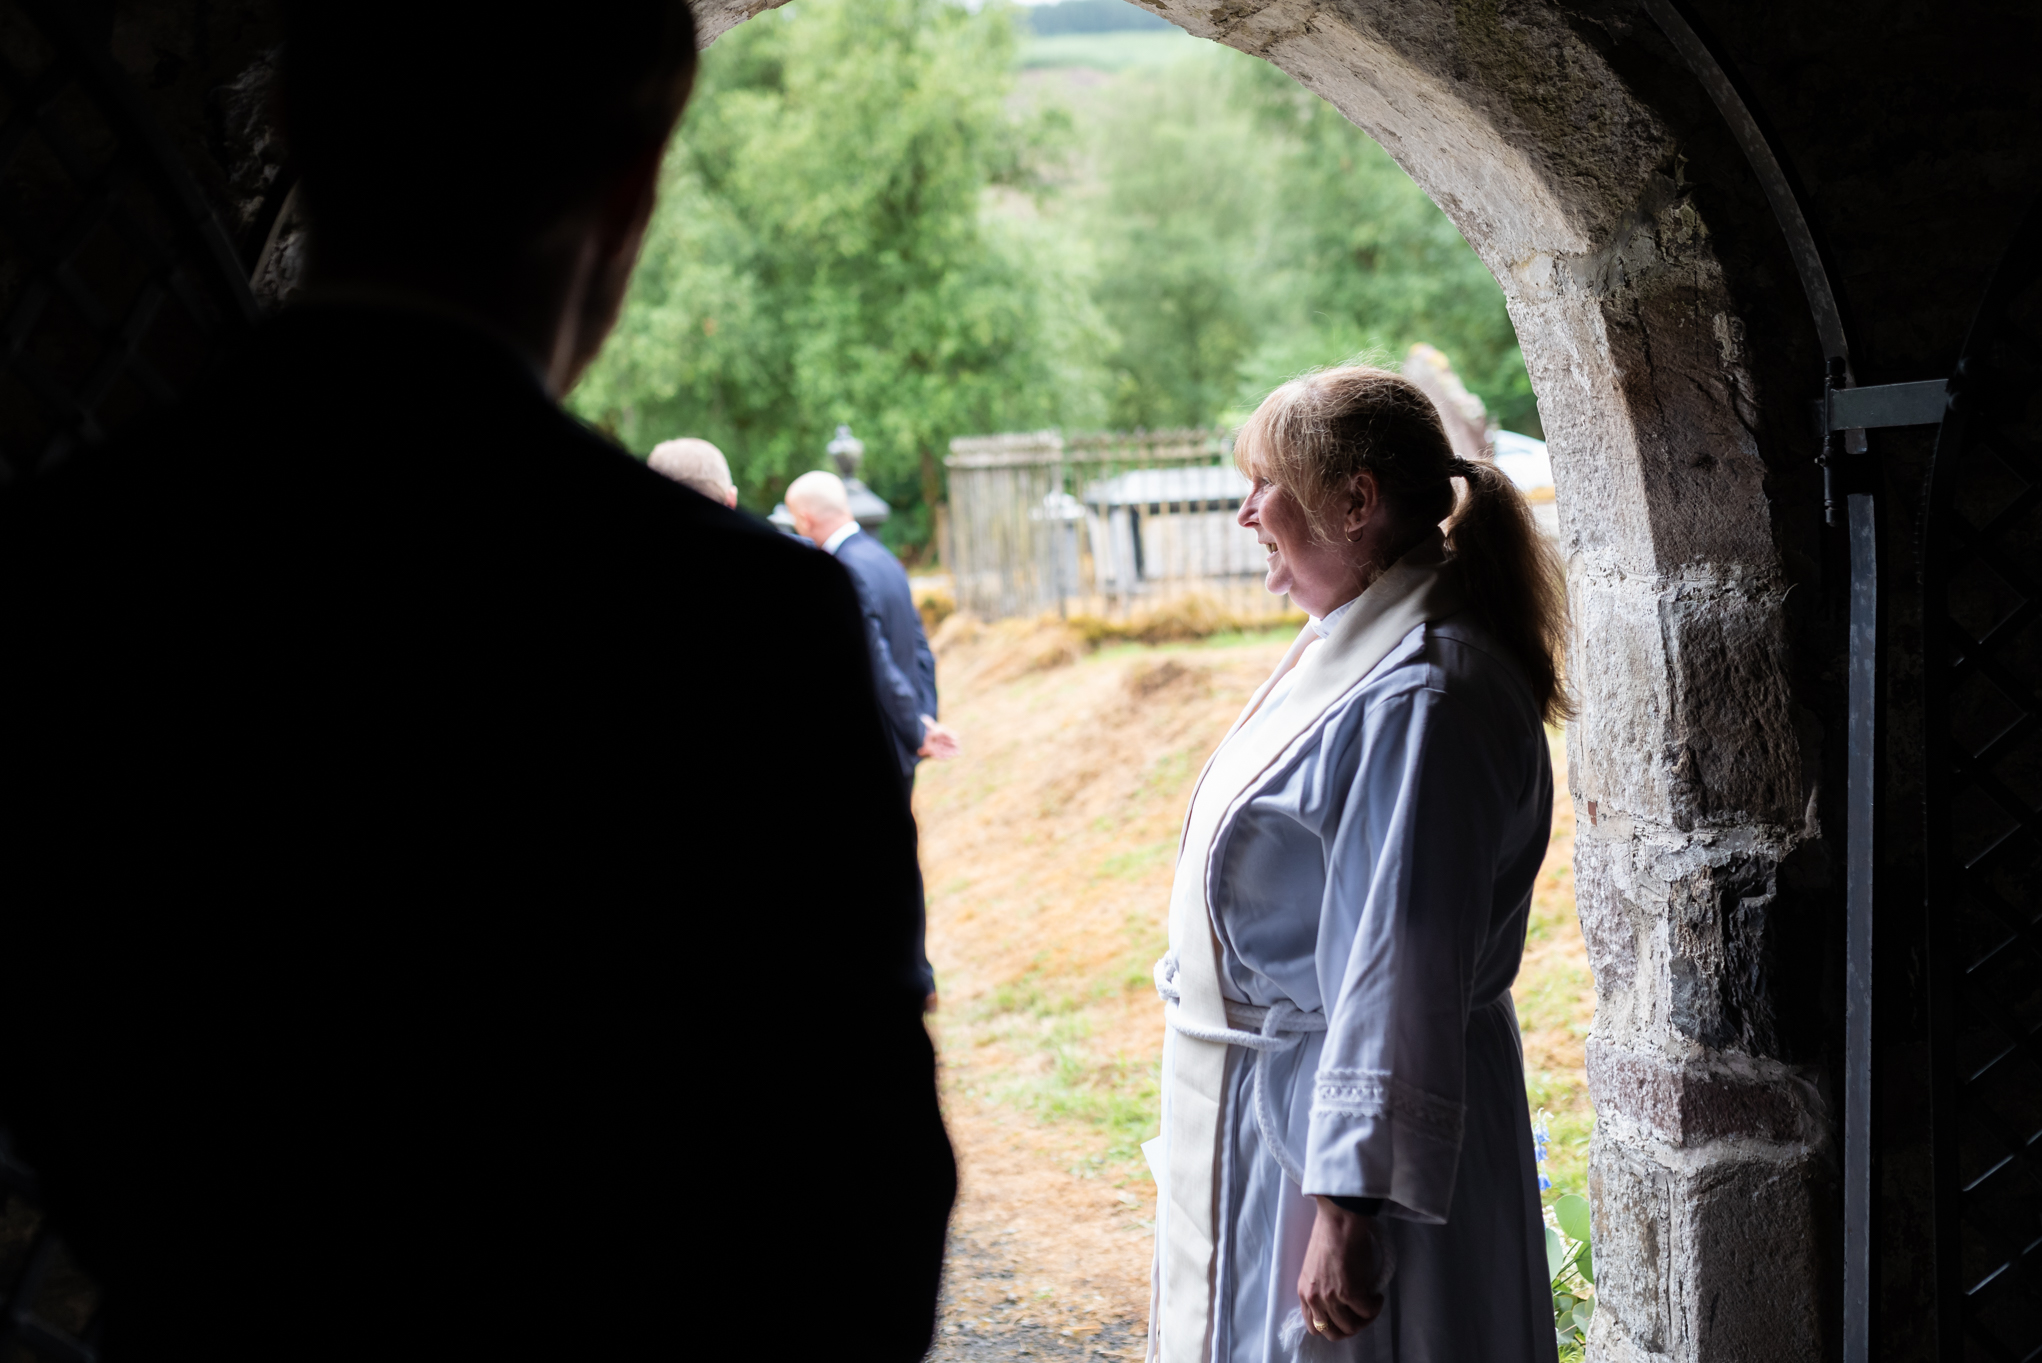 Vicar waiting for bride at wedding - Powys Wedding Photography